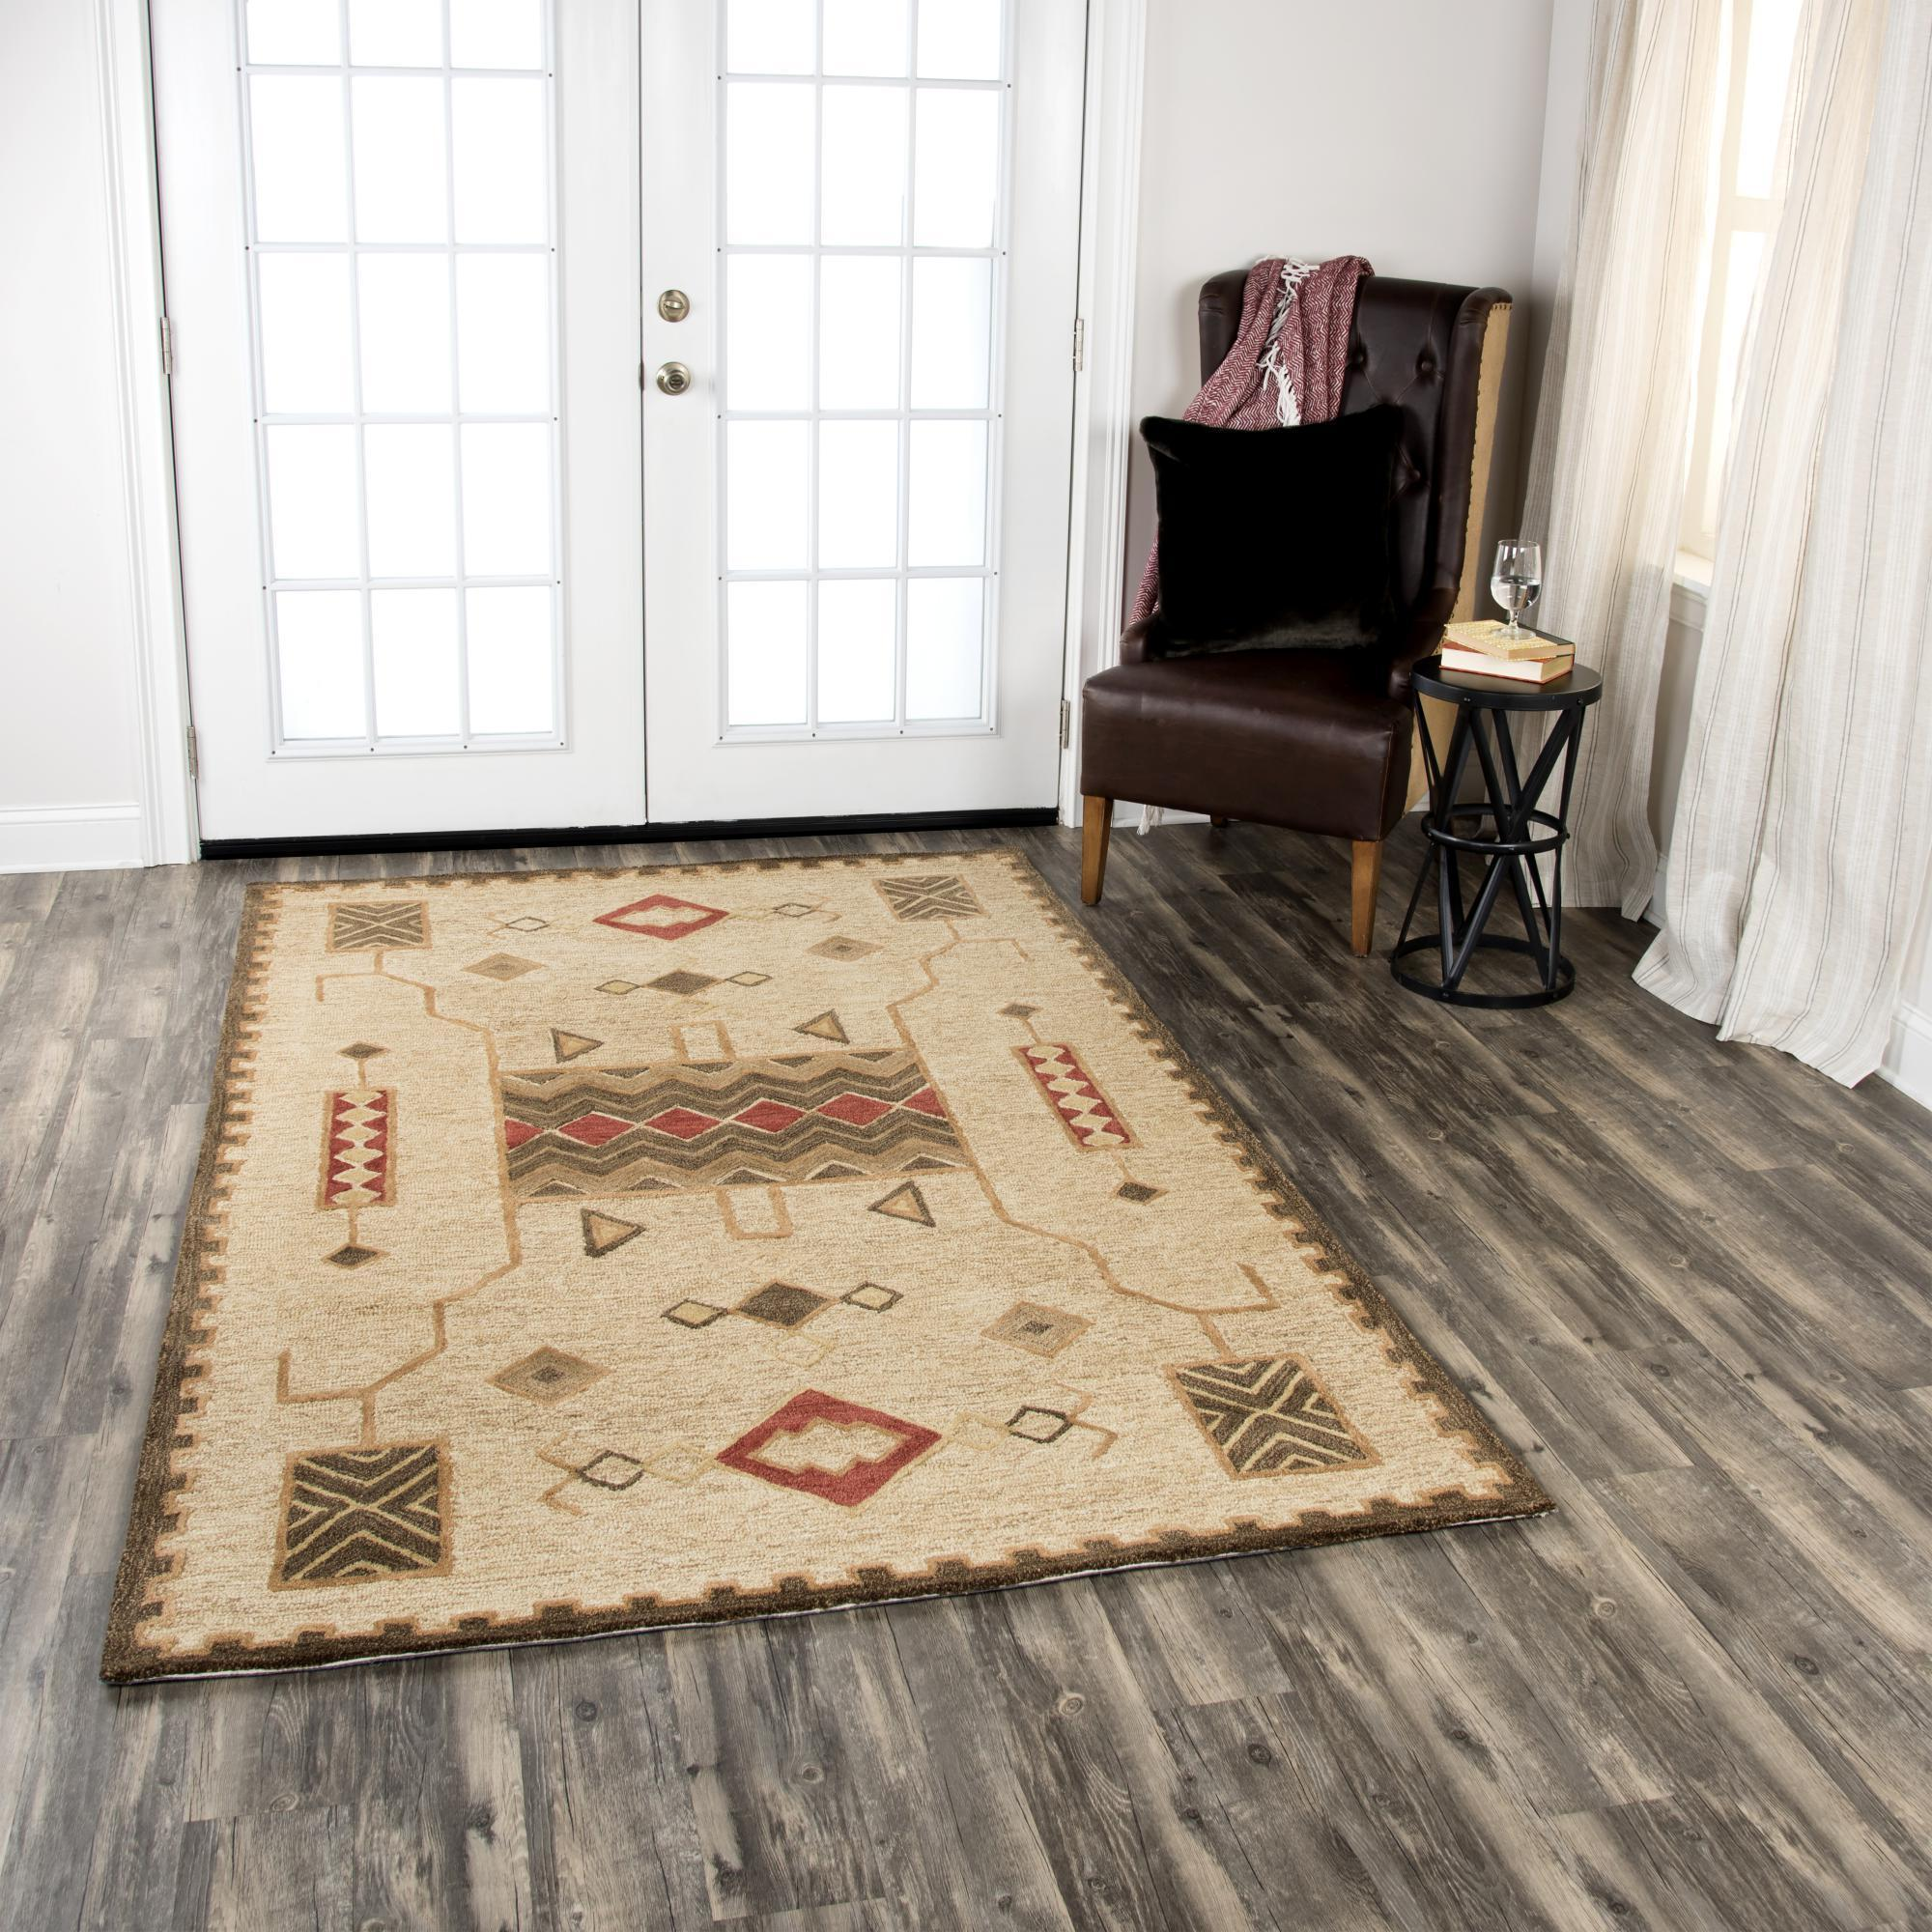 Rizzy Home Area Rugs Mesa Area Rugs MZ159B Gold Wool Southwest Design in 3 Sizes